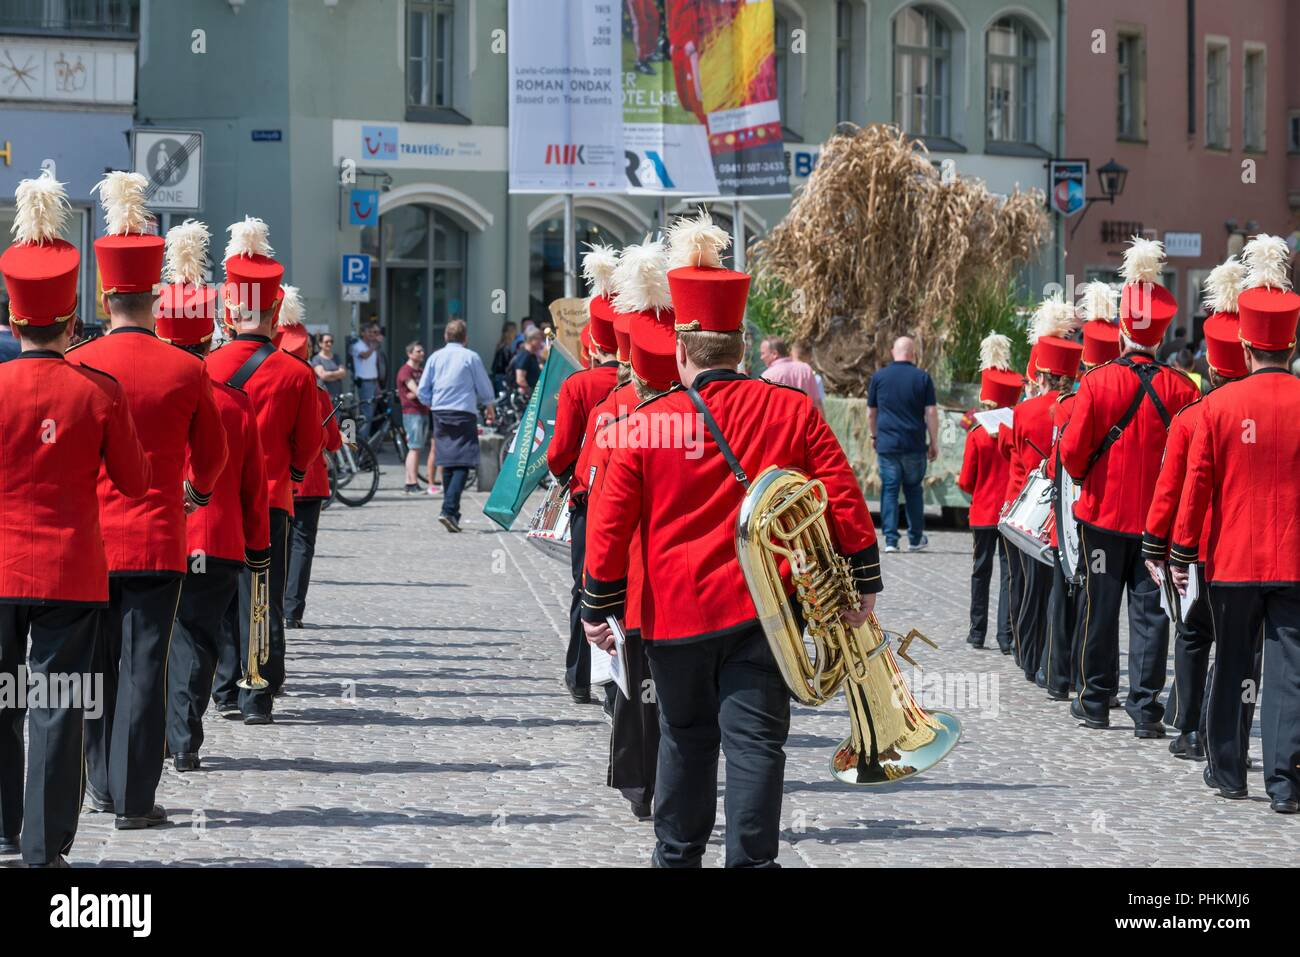 Regensburg, Germany, Mai 10, 2018, Maidult procession in Regensburg, Germany - Stock Image